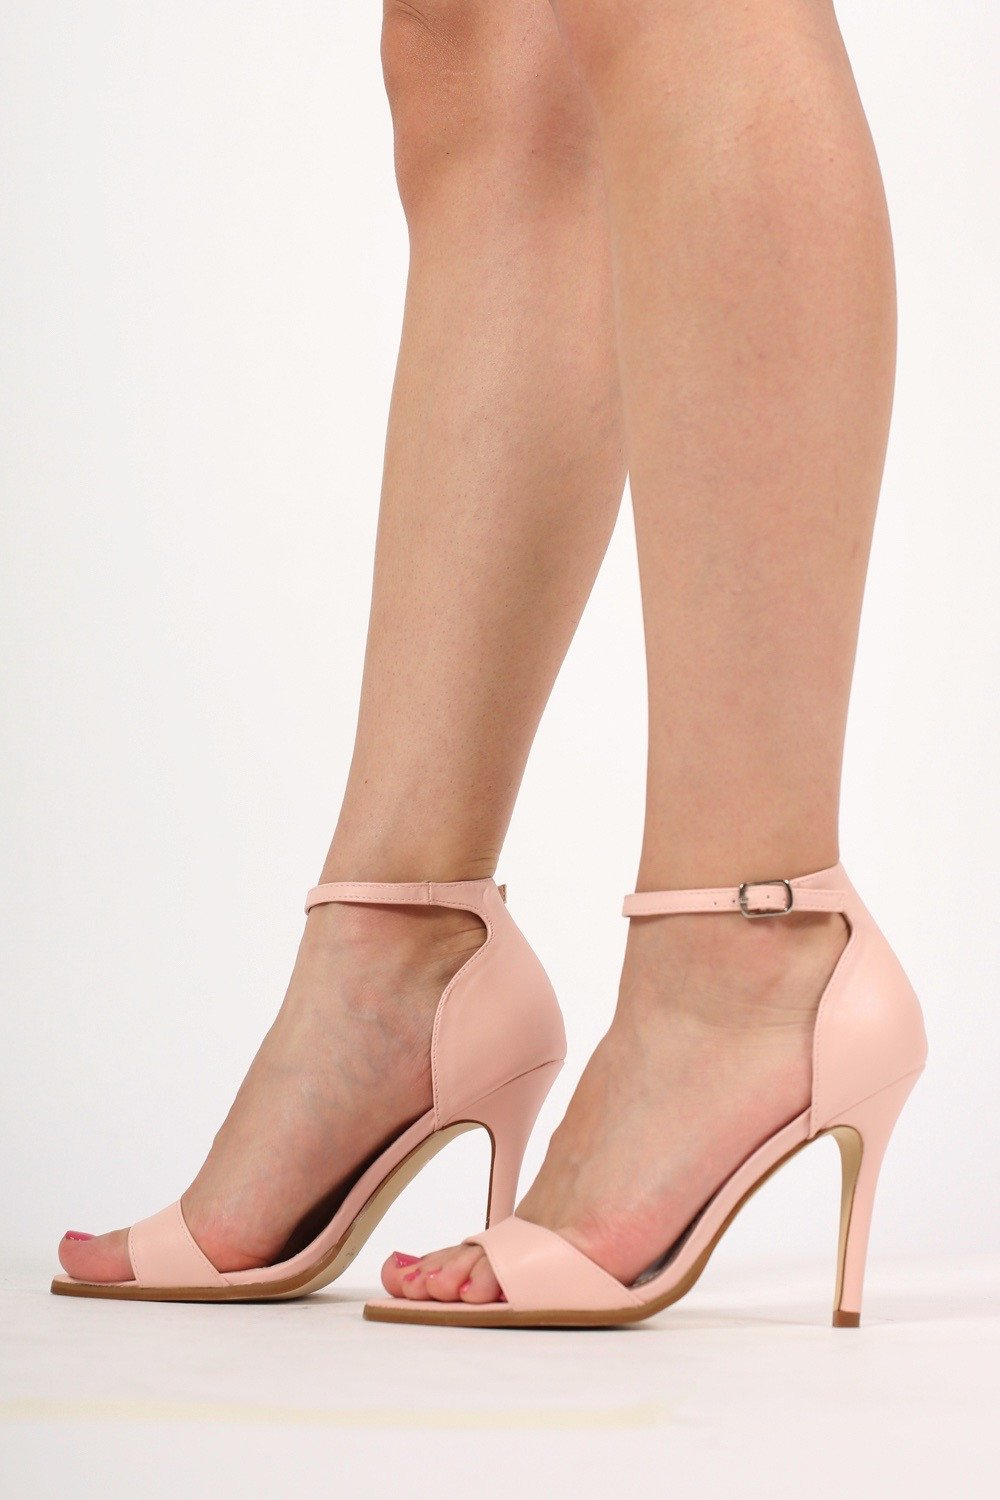 5ac72a1f12a Maya Barely There Strappy High Heel Sandals in Pale Pink MODEL SIDE